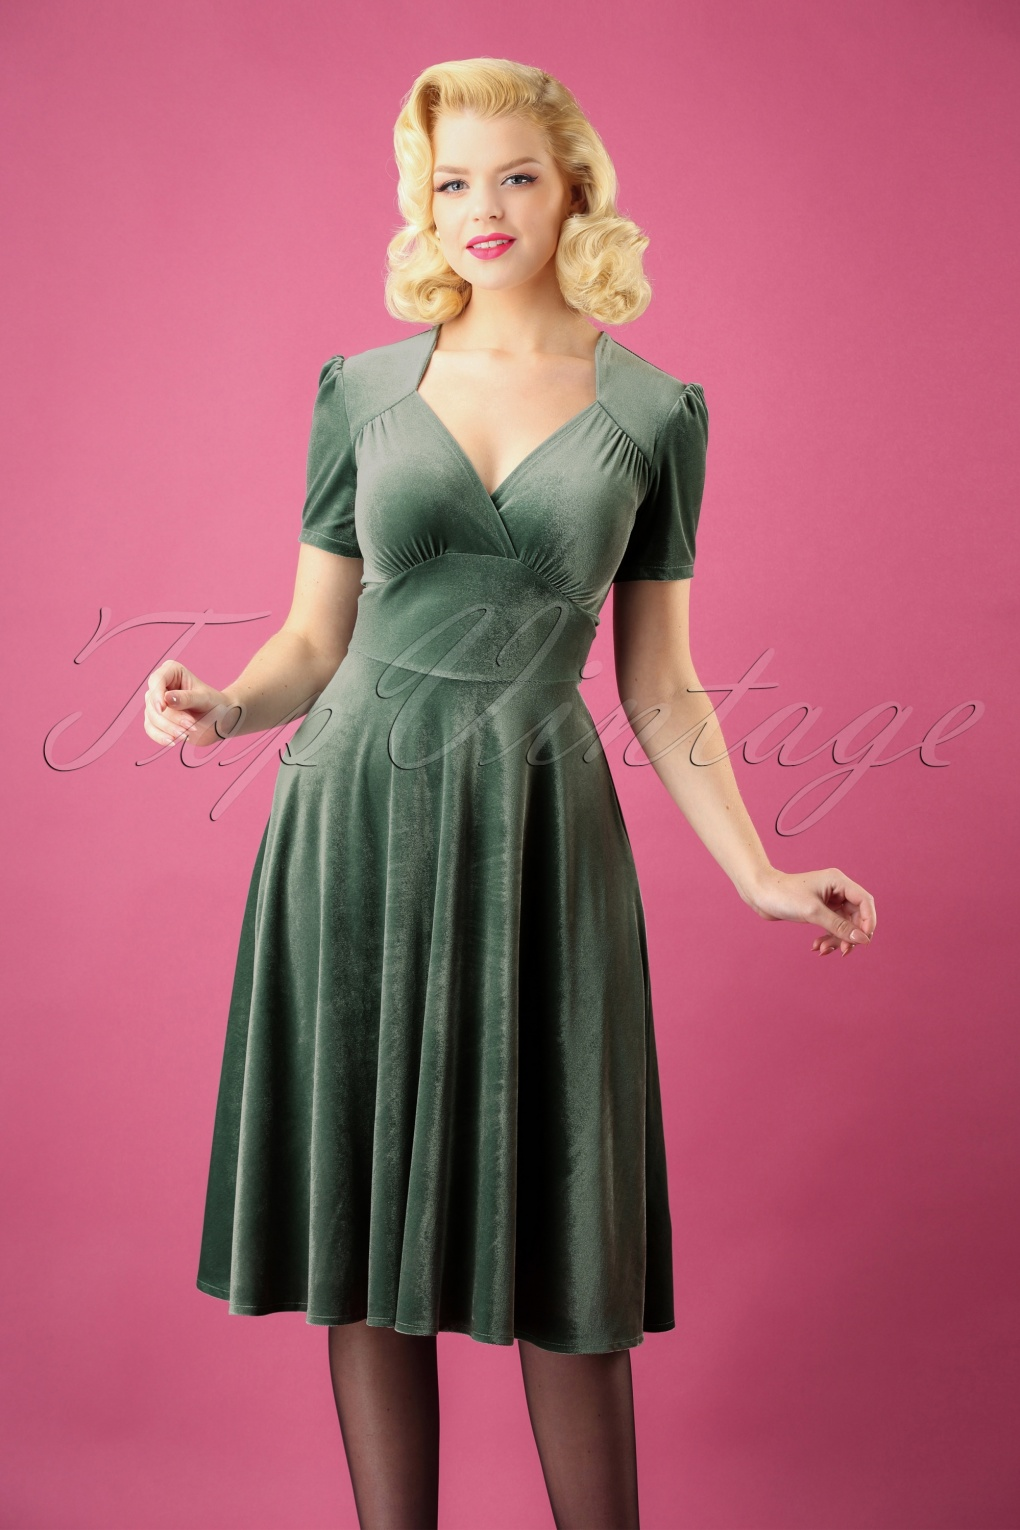 1950s Dresses, 50s Dresses | 1950s Style Dresses 50s Hollywood Circle Dress in Mint Velvet £112.62 AT vintagedancer.com